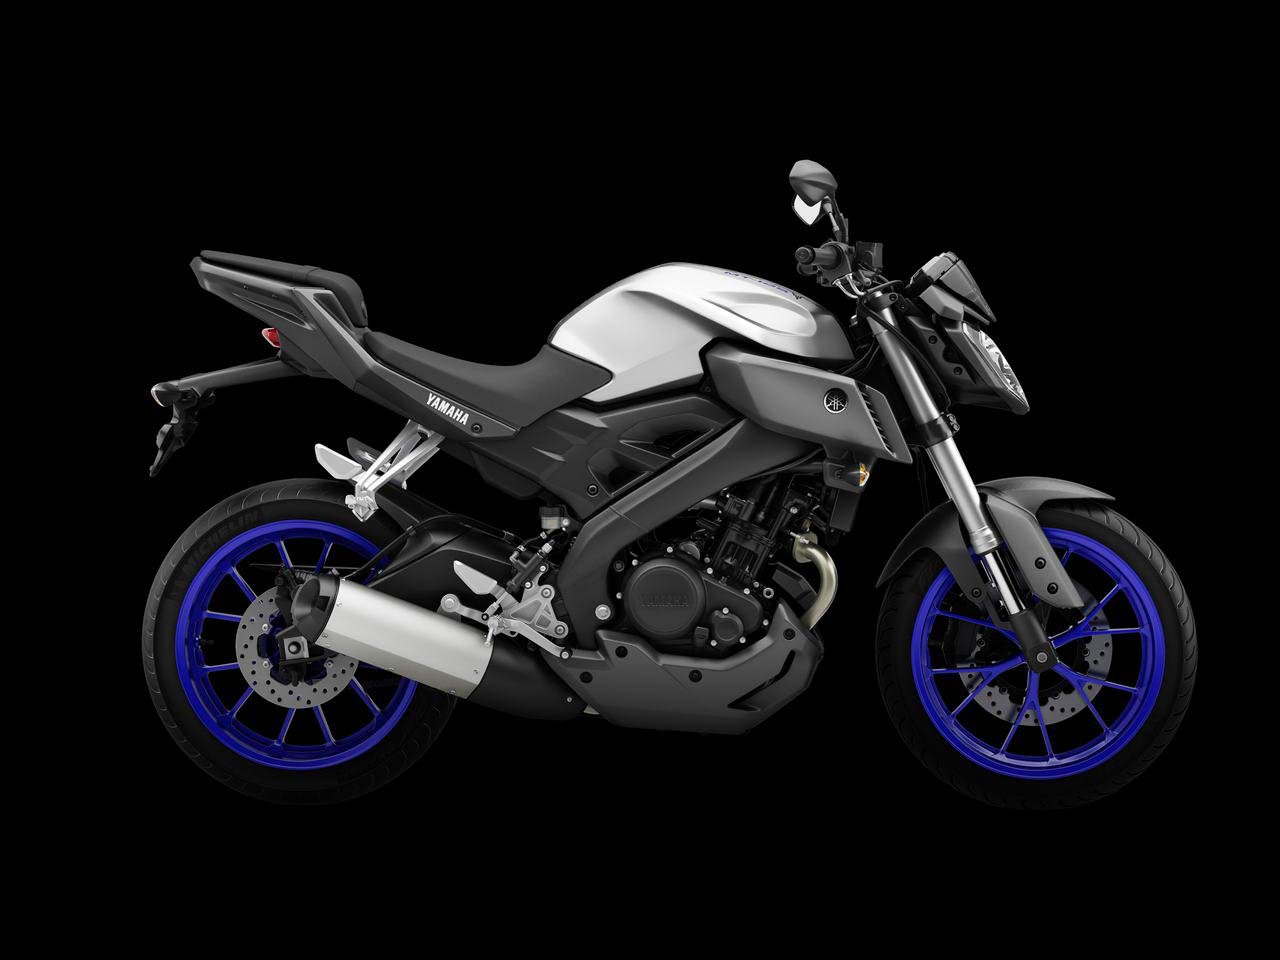 yamaha mt 125 europe gets another mt asphalt rubber. Black Bedroom Furniture Sets. Home Design Ideas